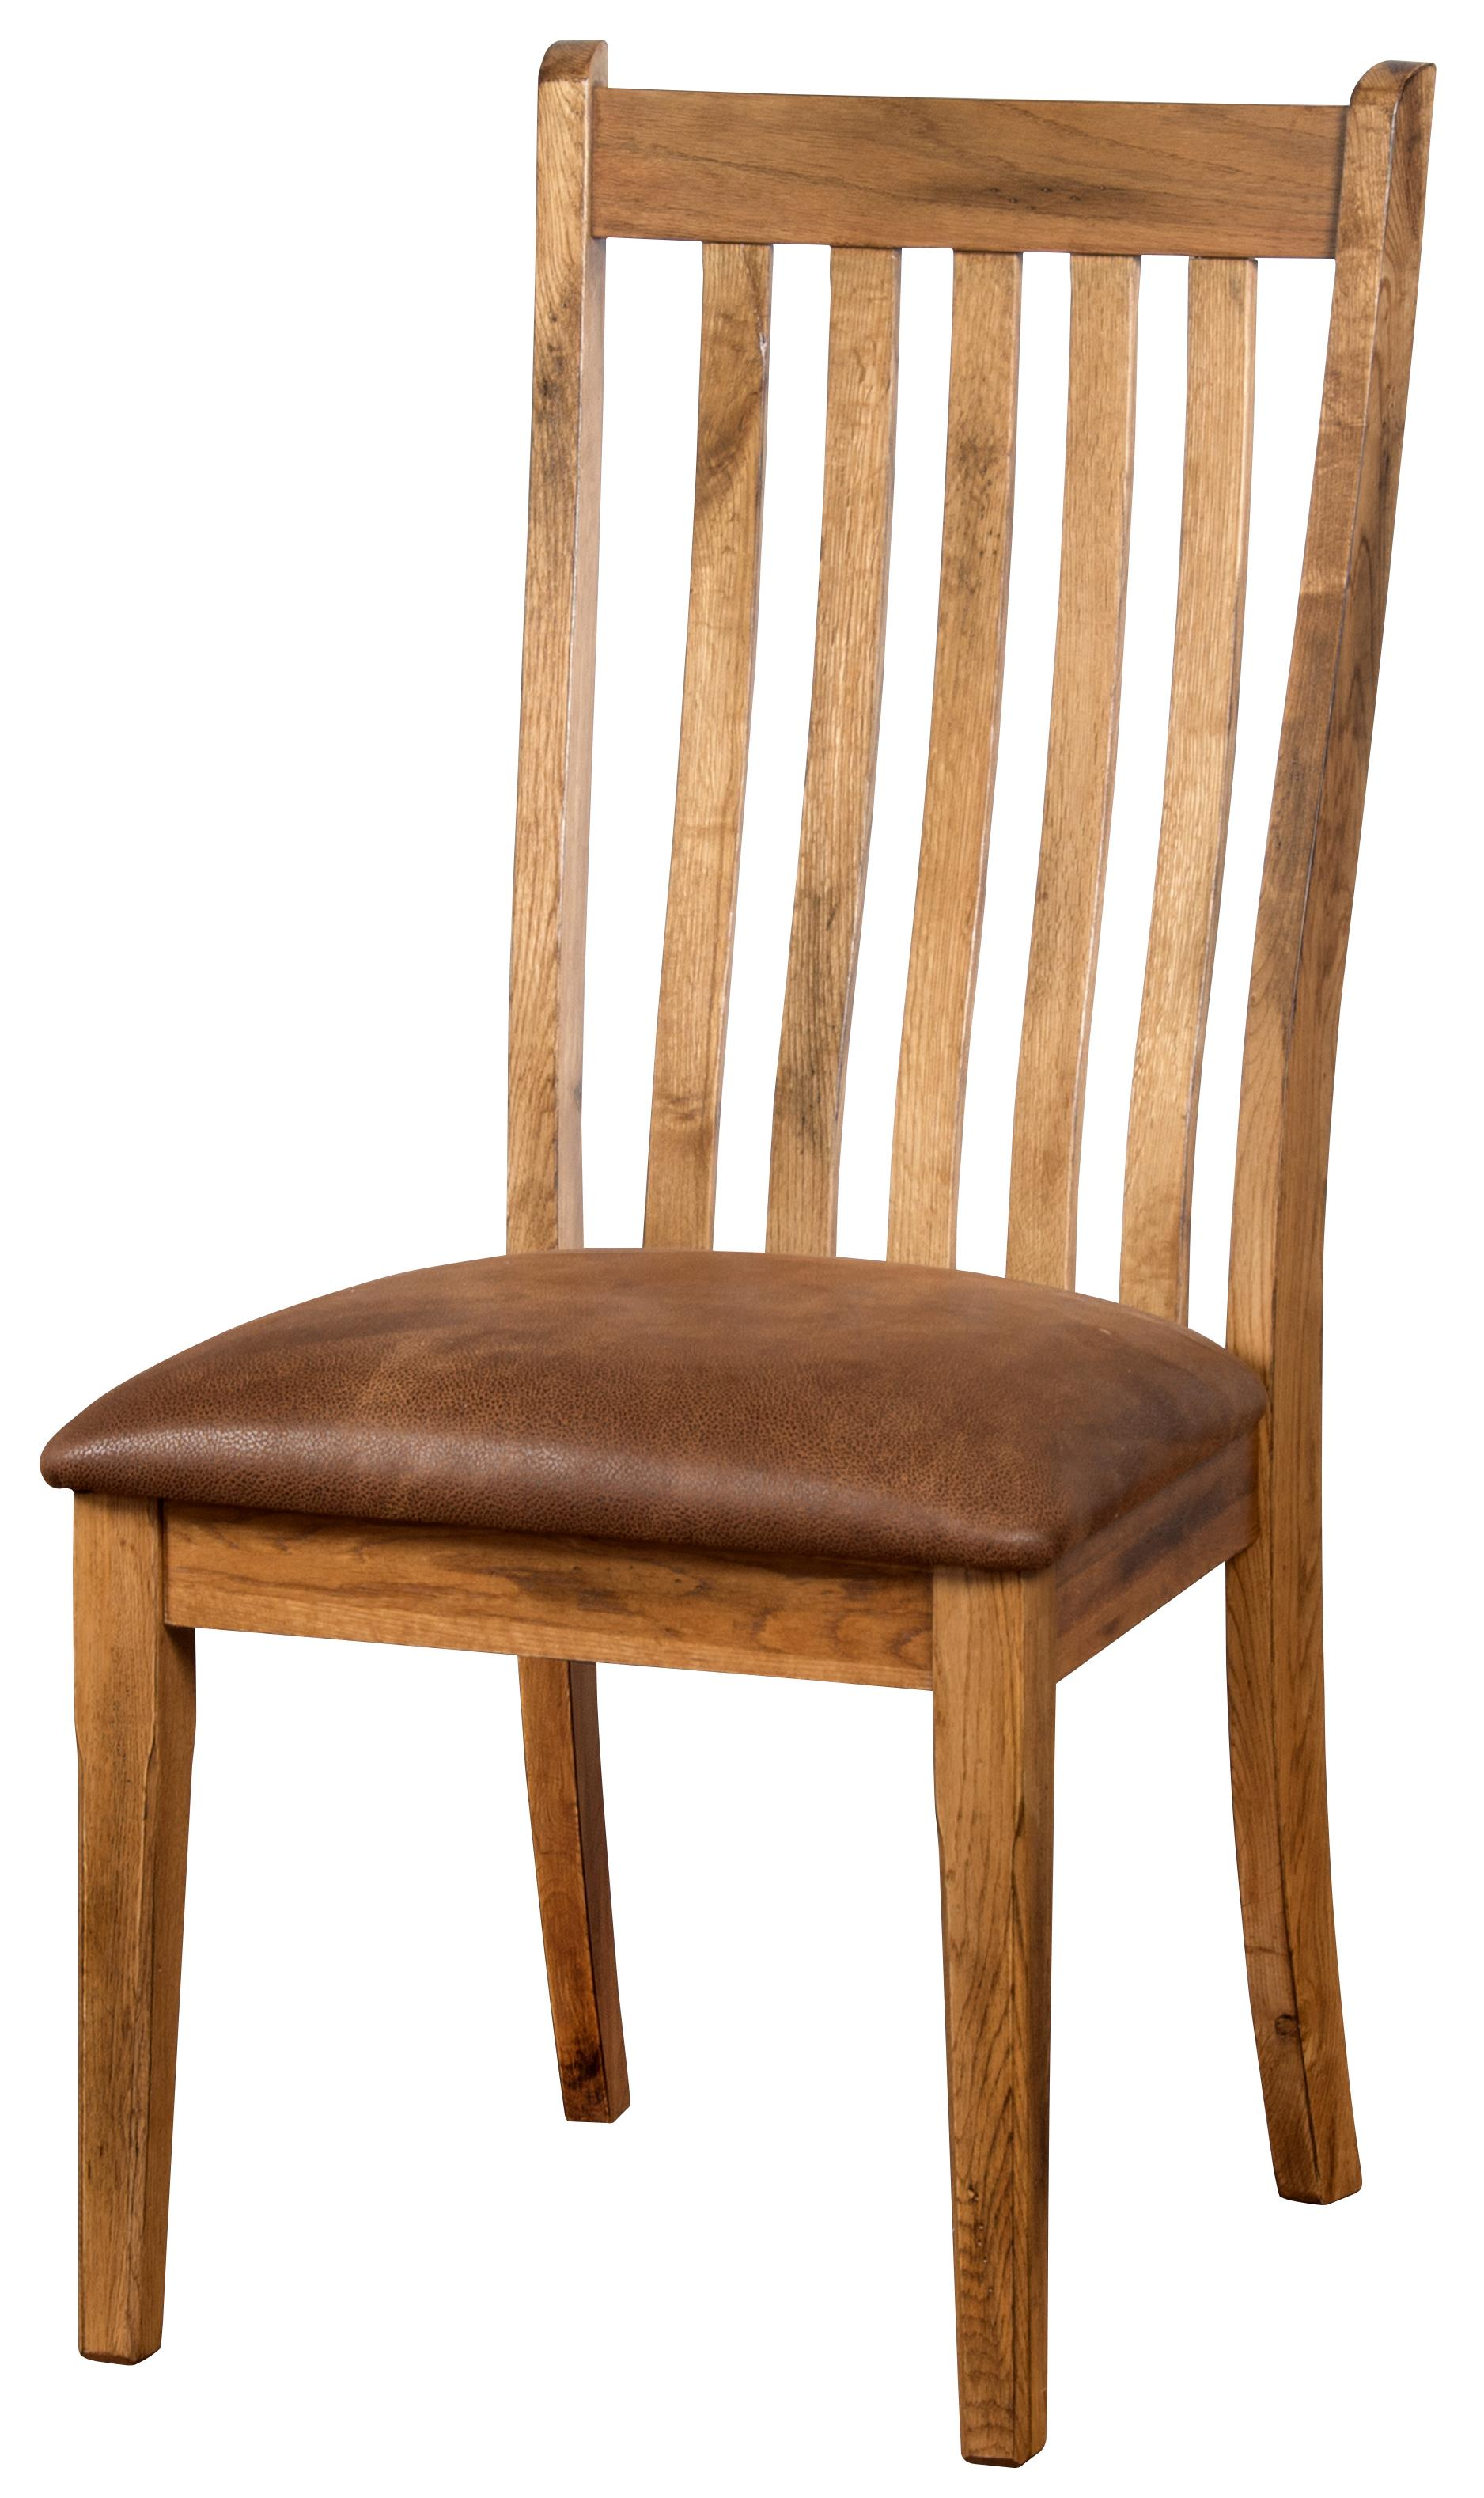 Sunny Designs Sedona Side Chair w/ Cushion Seat - Item Number: 1408RO-CT